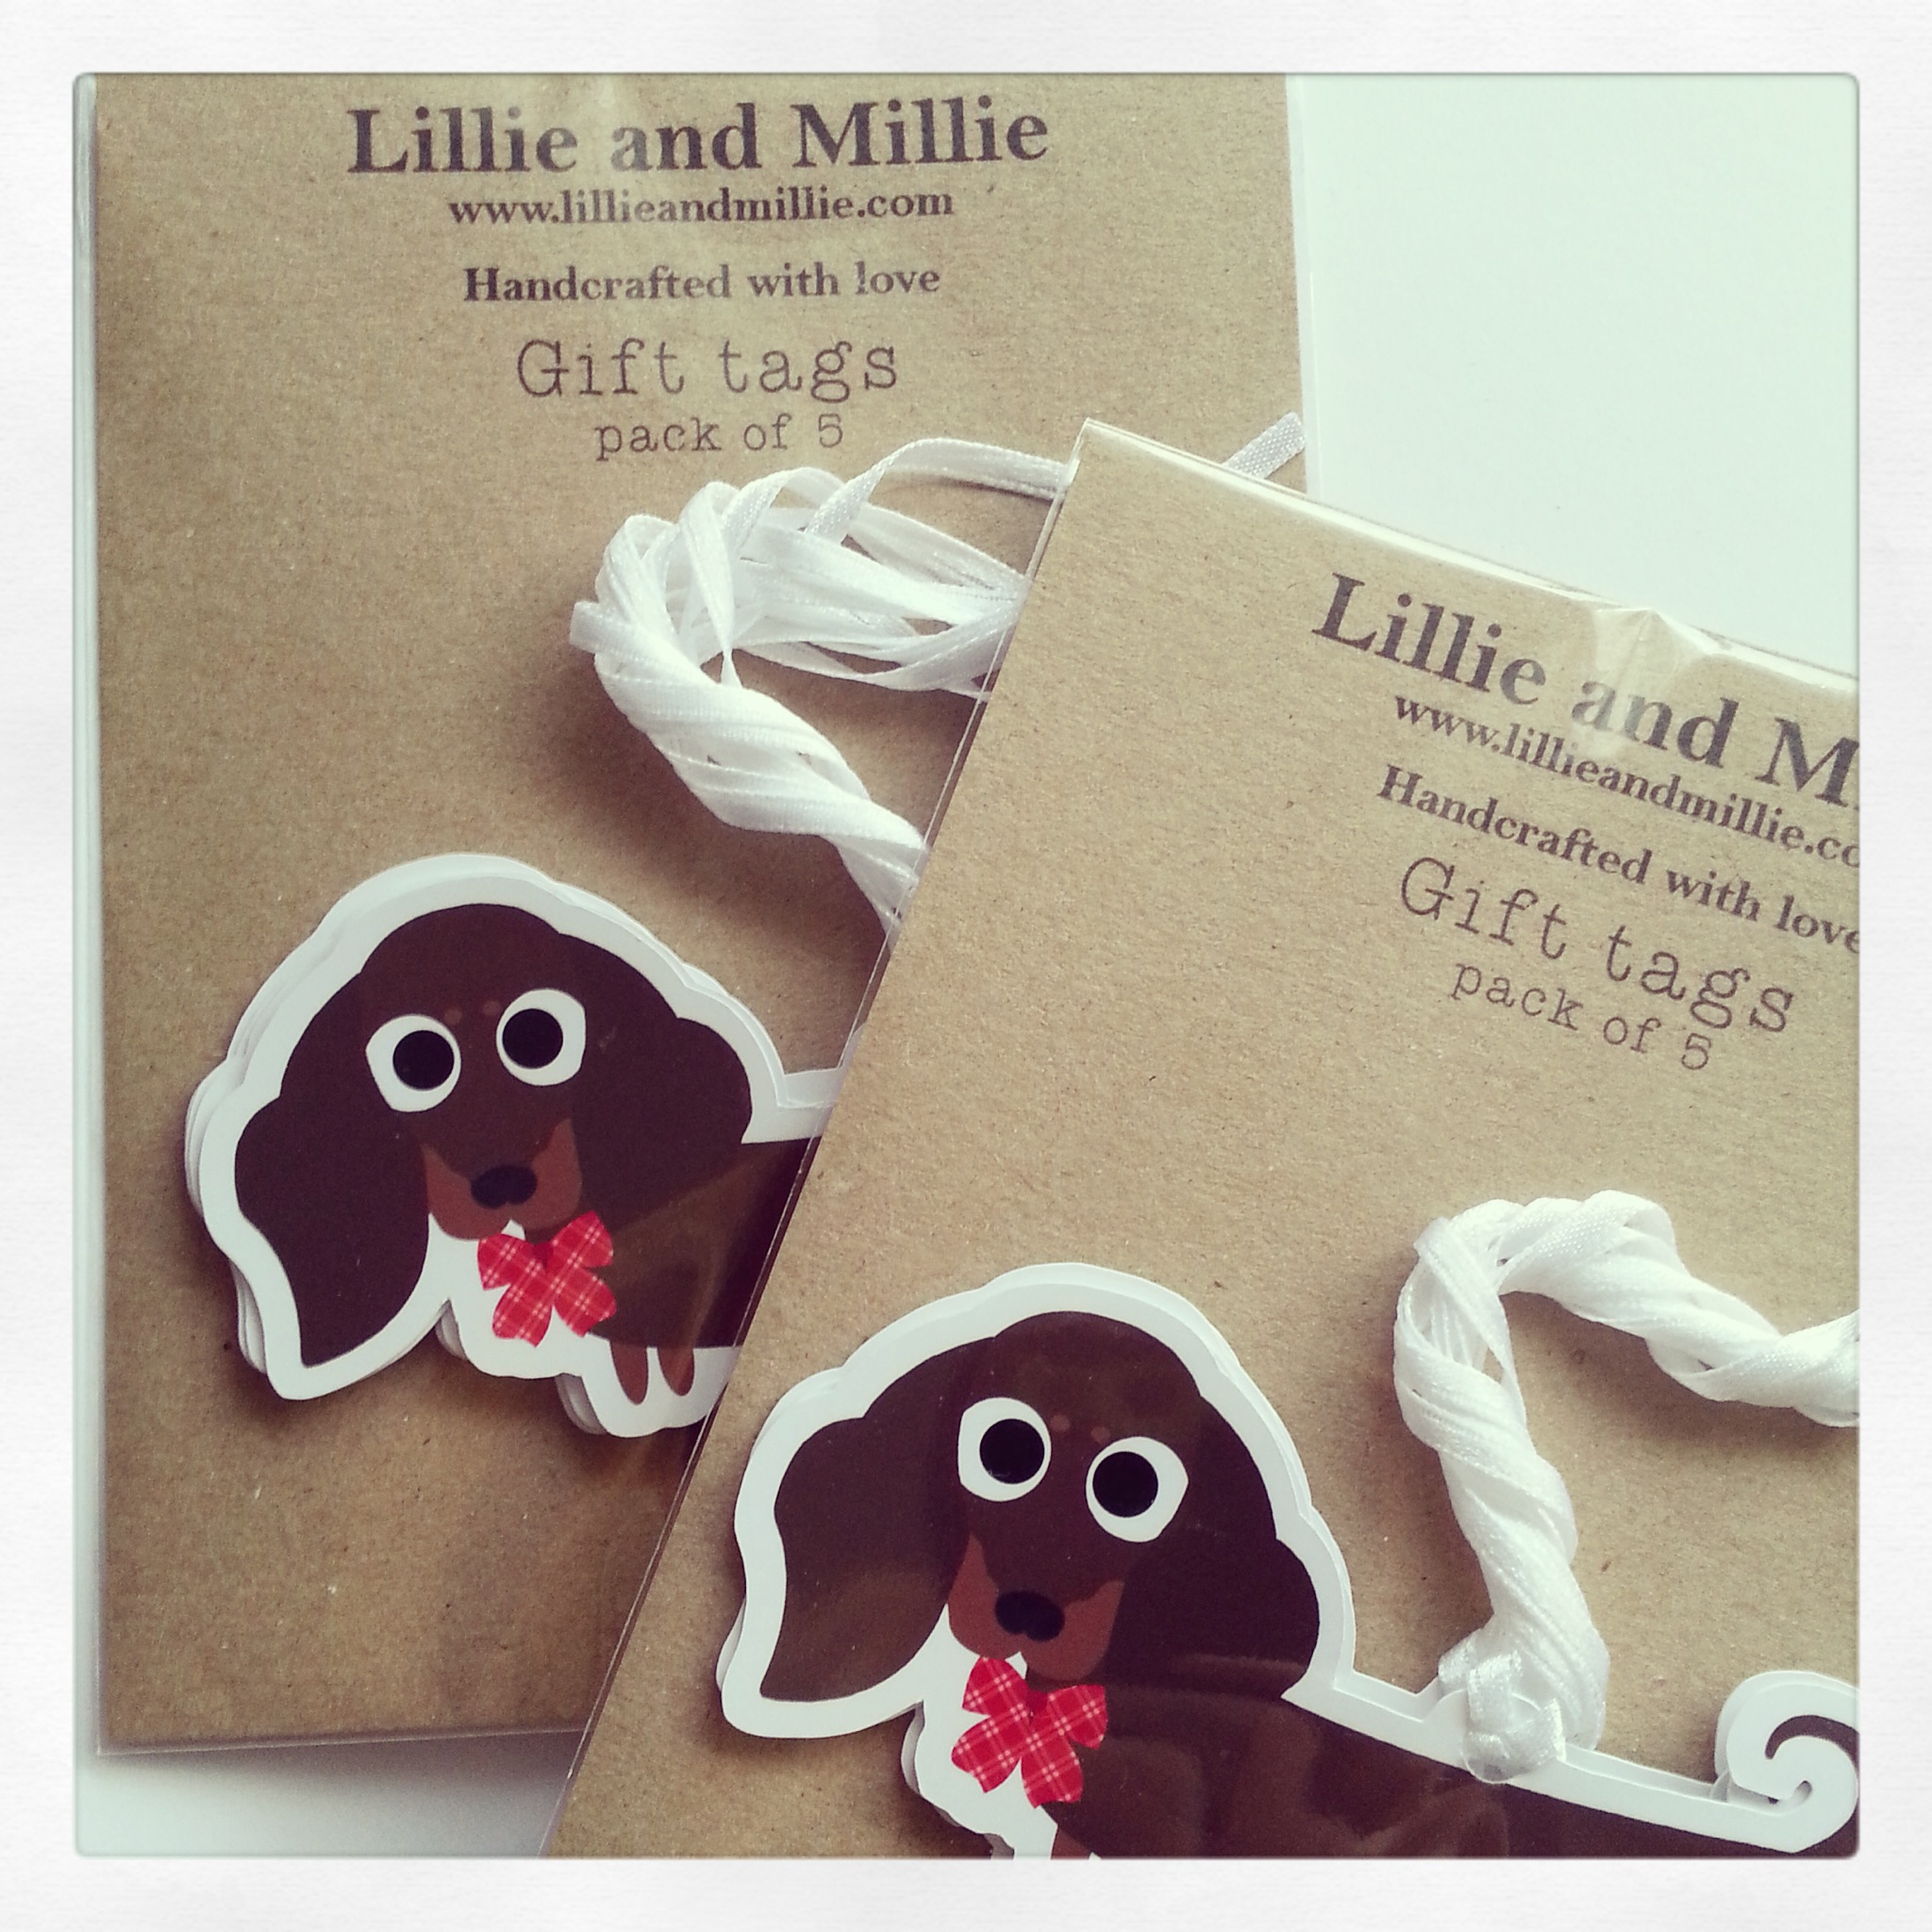 Cute and Cuddly Dachshund Gift Tags 5 Pack